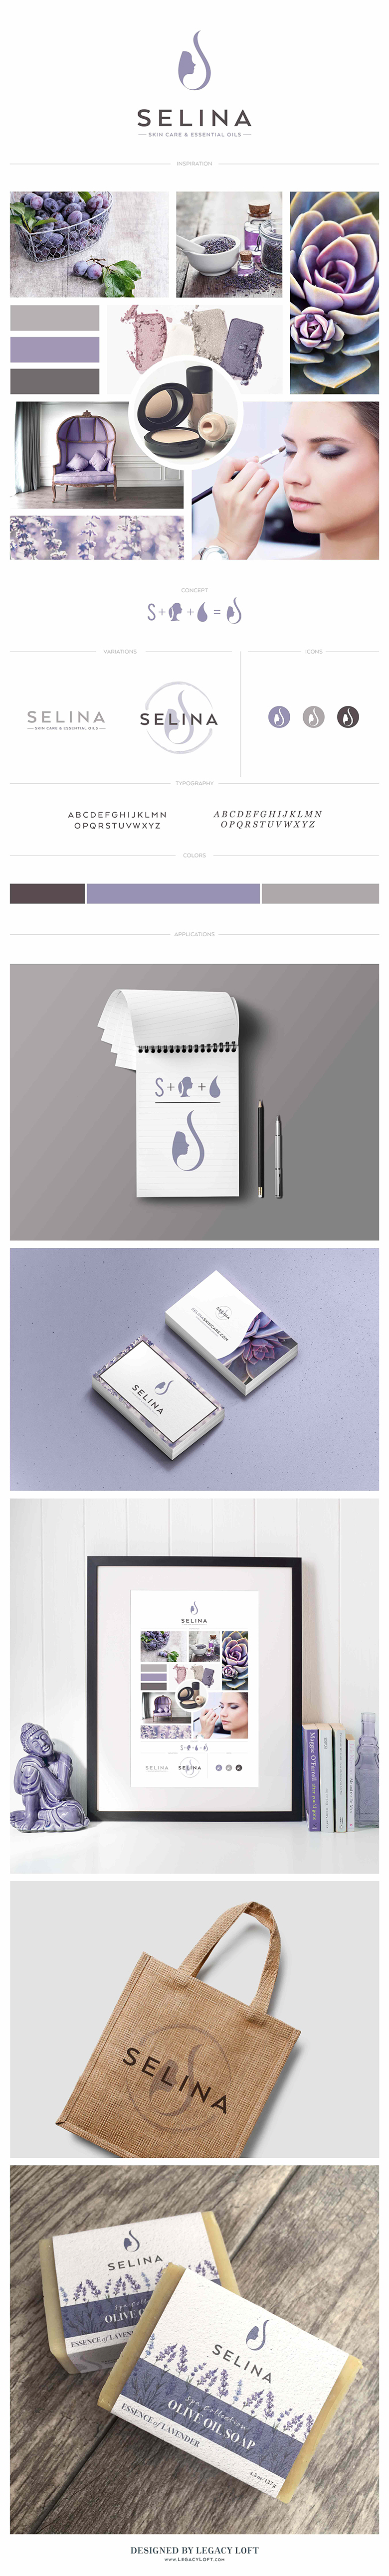 skin-care-branding-graphic-design-brand-board